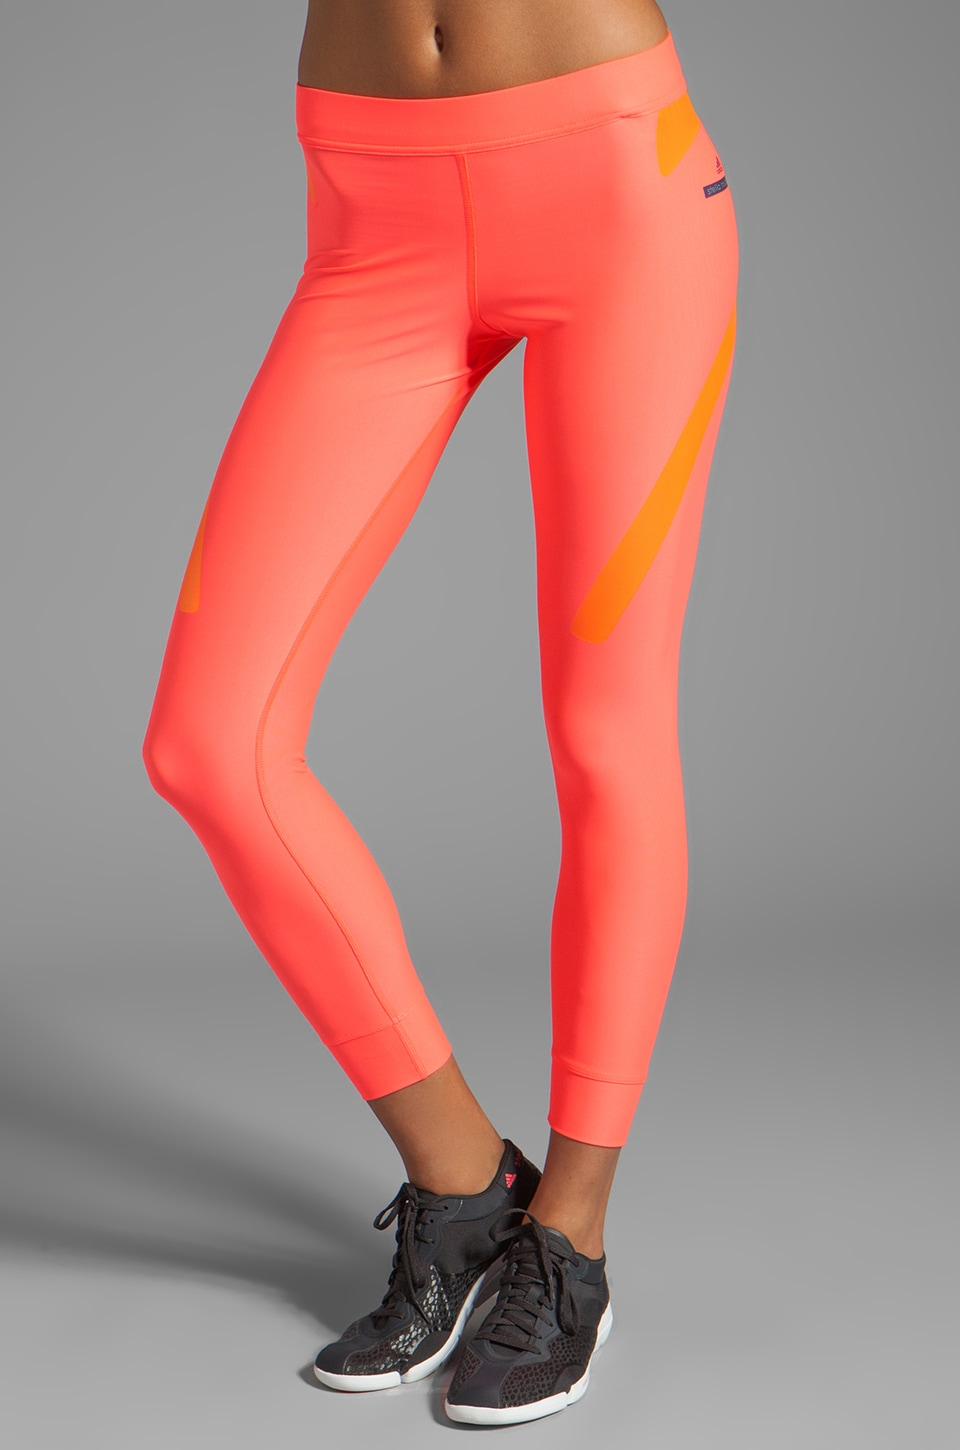 adidas by Stella McCartney Athletic Pant in Turbo